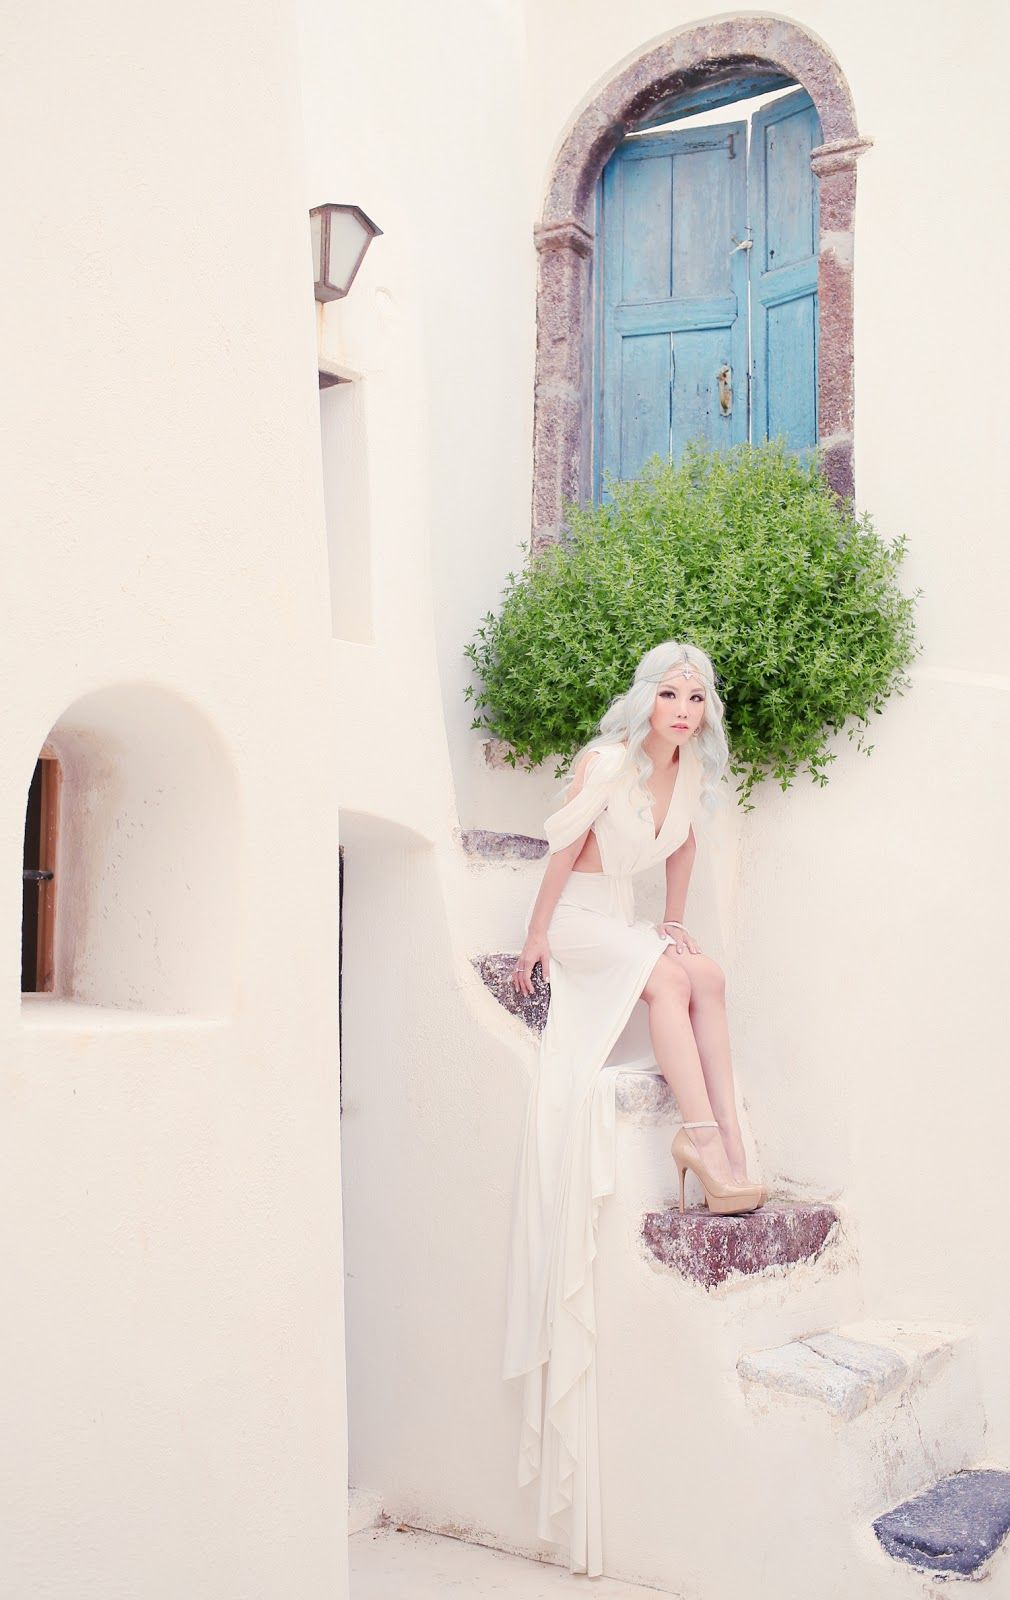 Xiaxue S Amazing Wedding Shoot With Sunrise Greece In Santorini Xiaxue Blogspot Com Wedding Photoshoot Greece Wedding Wedding Shoot